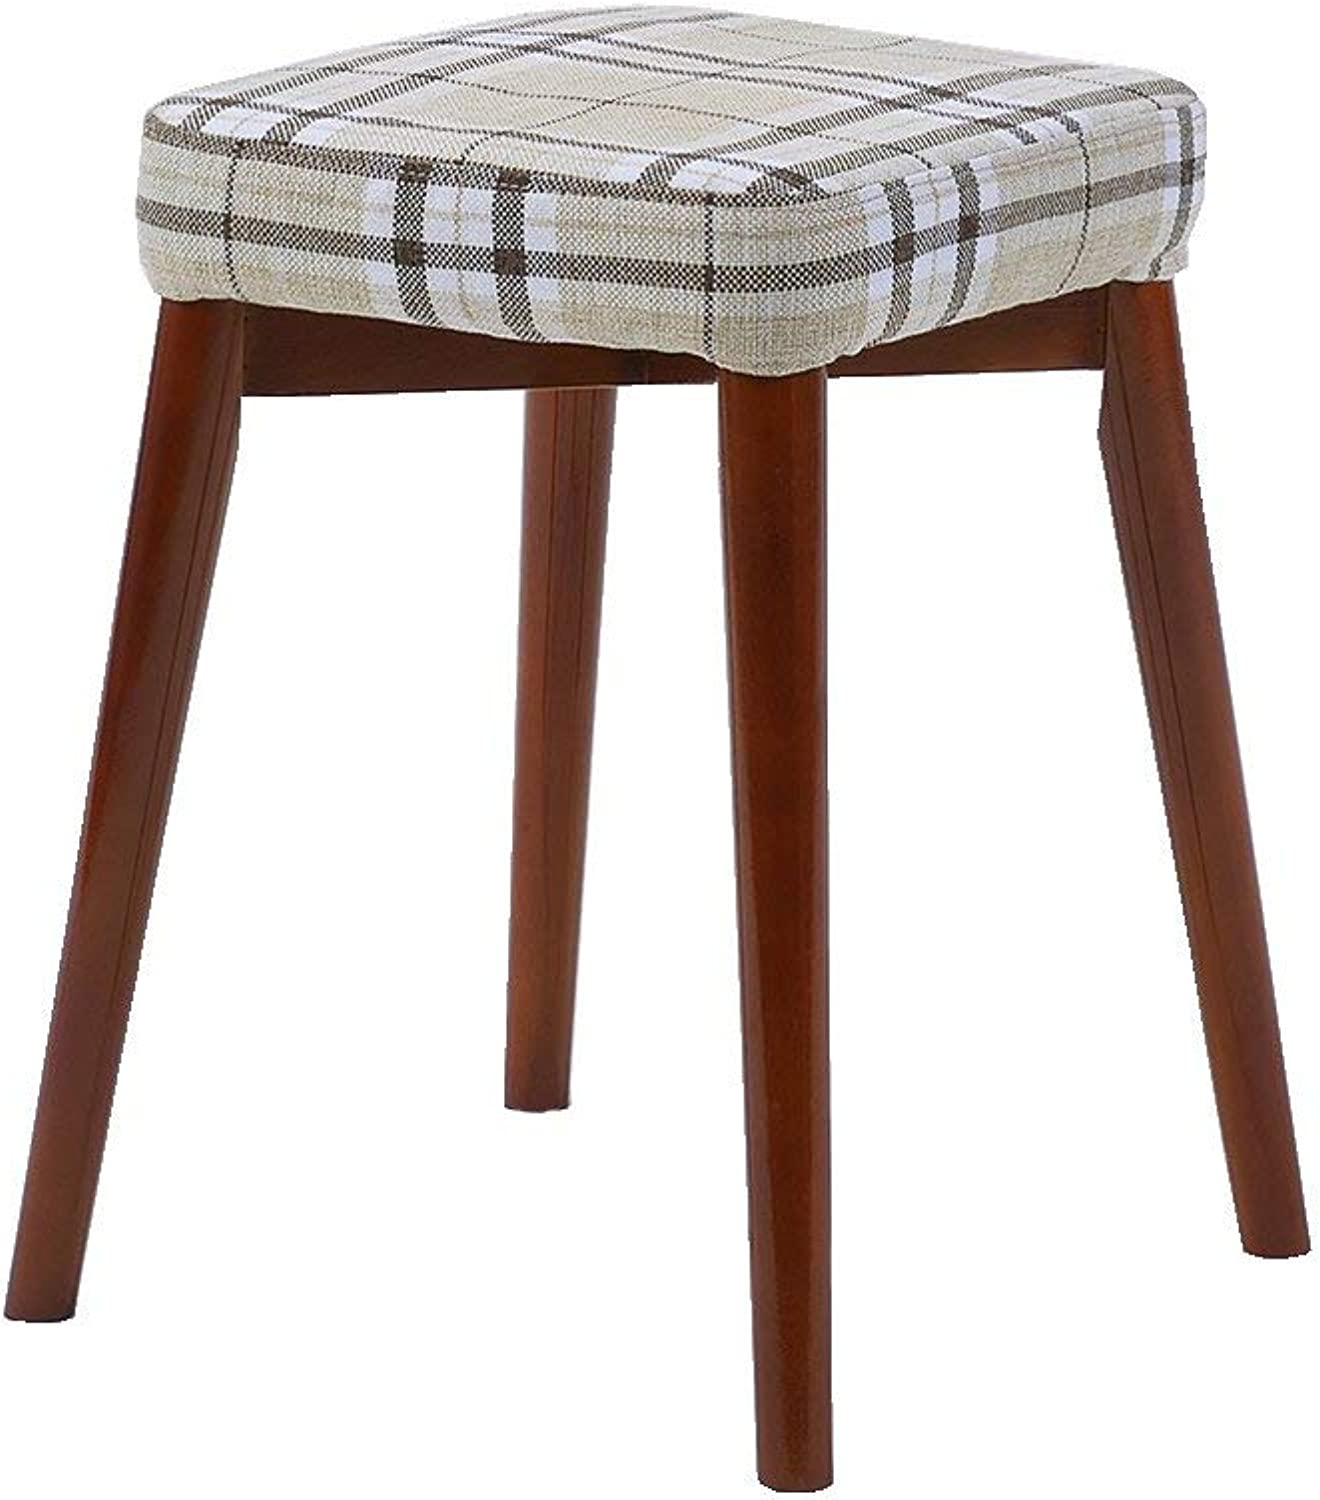 Ronggoutrade Solid Wood Stool, Home Bench Dressing Stool Fashion Creative Square Stool Dining Stool Fabric Stool Stool - Small Stool (color   B)